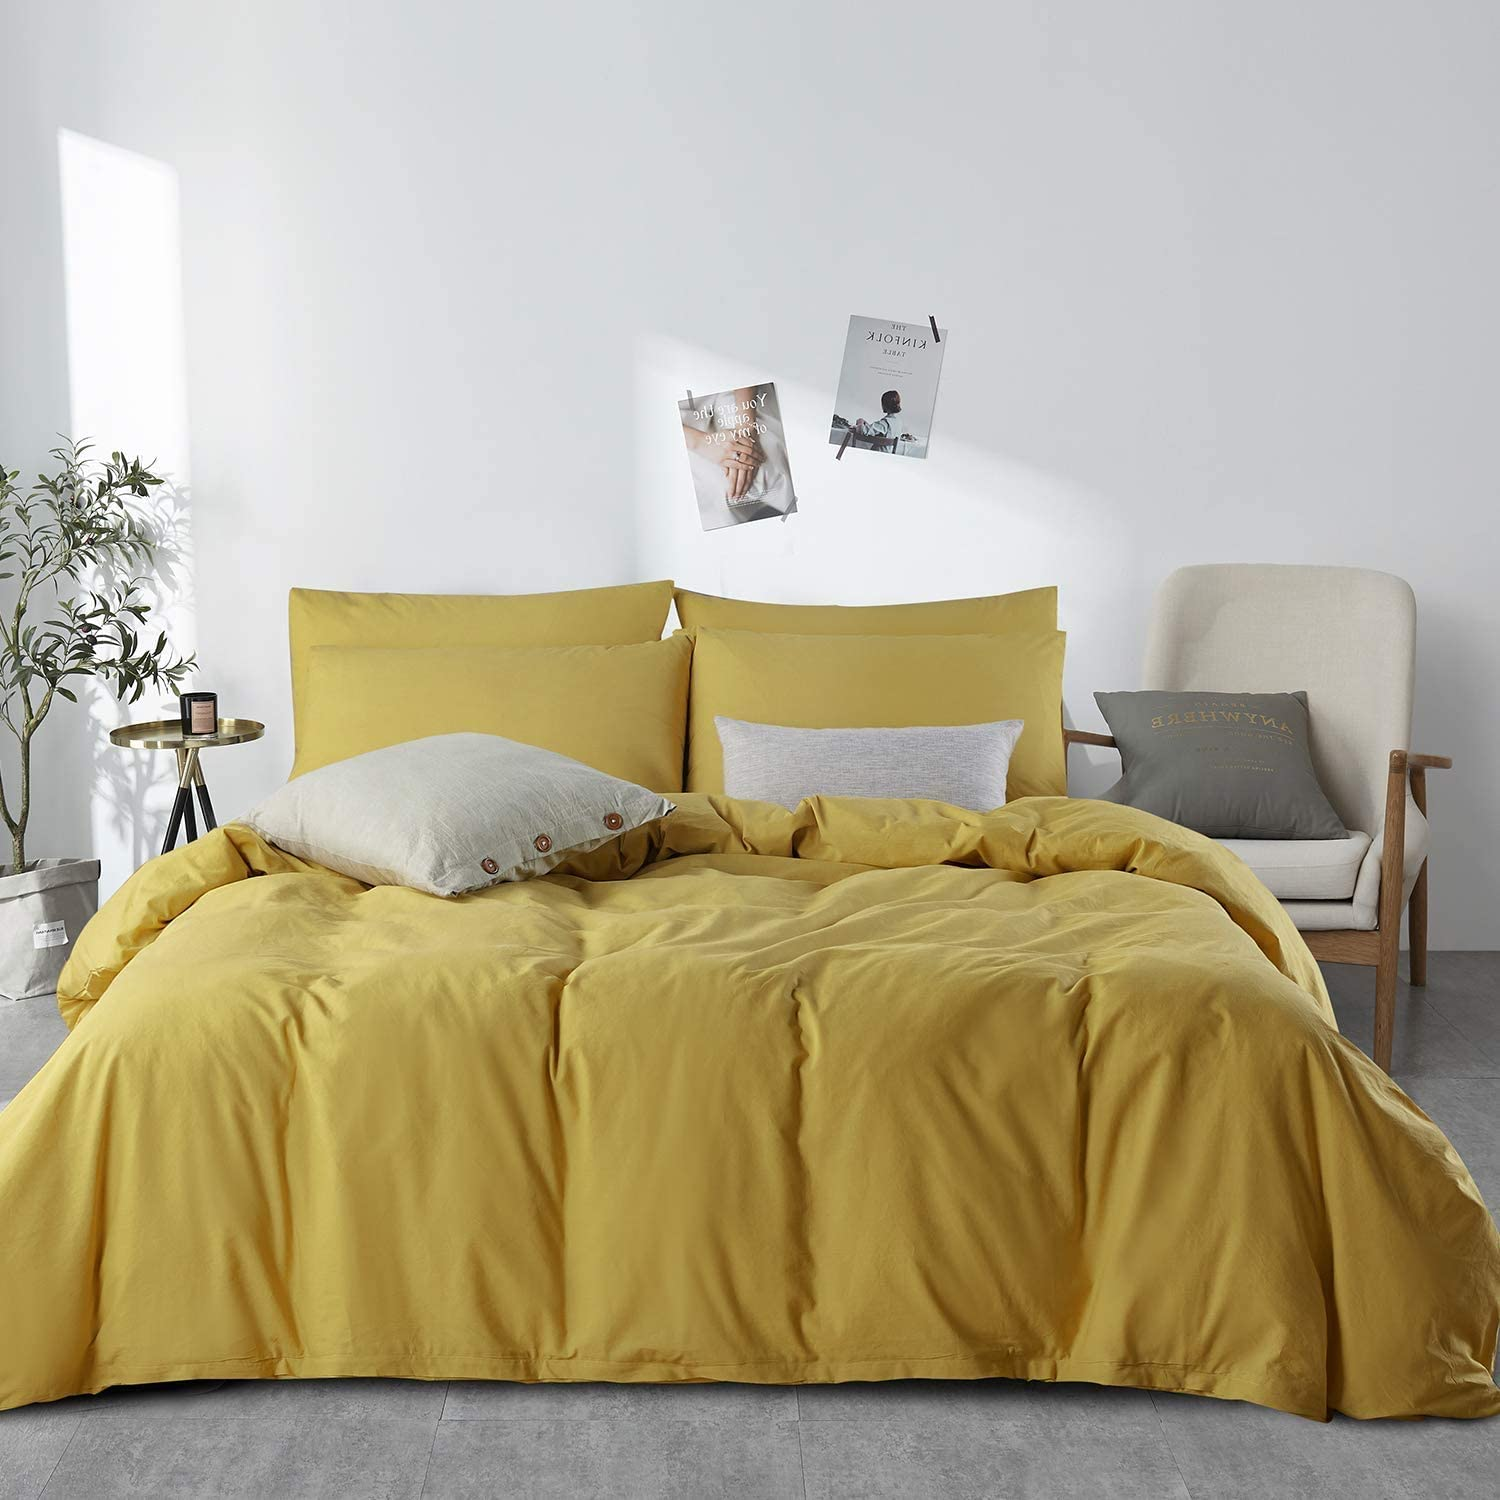 JELLYMONI Ginger 100% Washed Cotton Duvet Cover Set, 3 Pieces Ultra Soft Bedding Set with Zipper Closure. Solid Color Pattern Duvet Cover Queen Size(No Comforter)